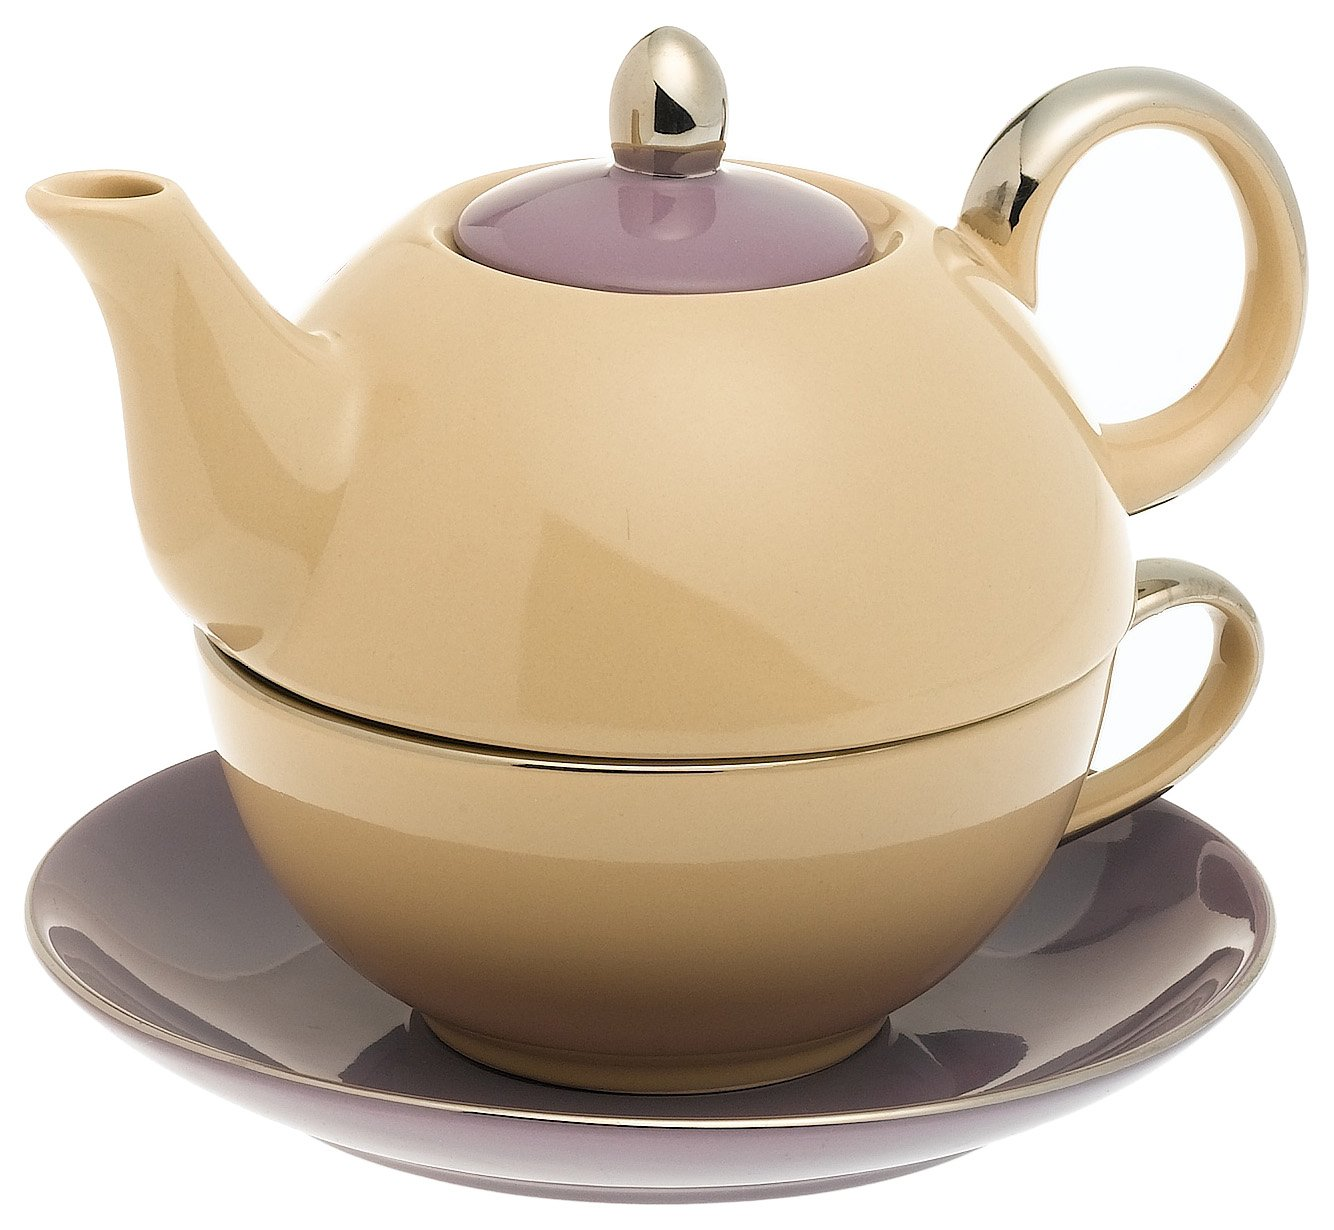 Siena 14 oz. Tea for One with Saucer